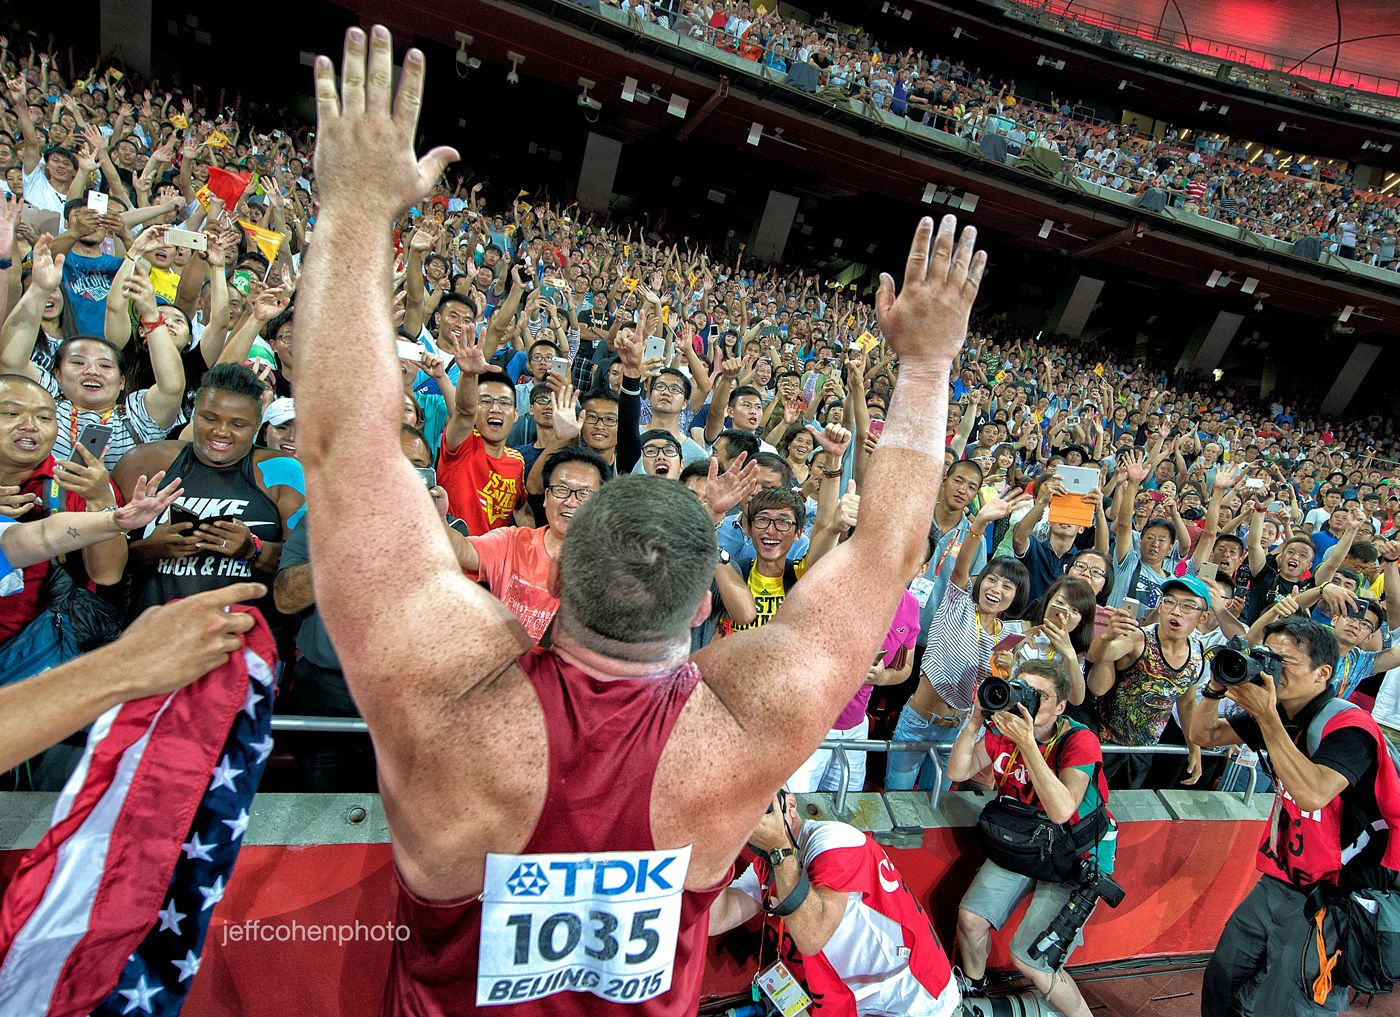 1beijing2015_day2_kovacs_spm_crowd_jeff_cohen_photo_6849_web.jpg